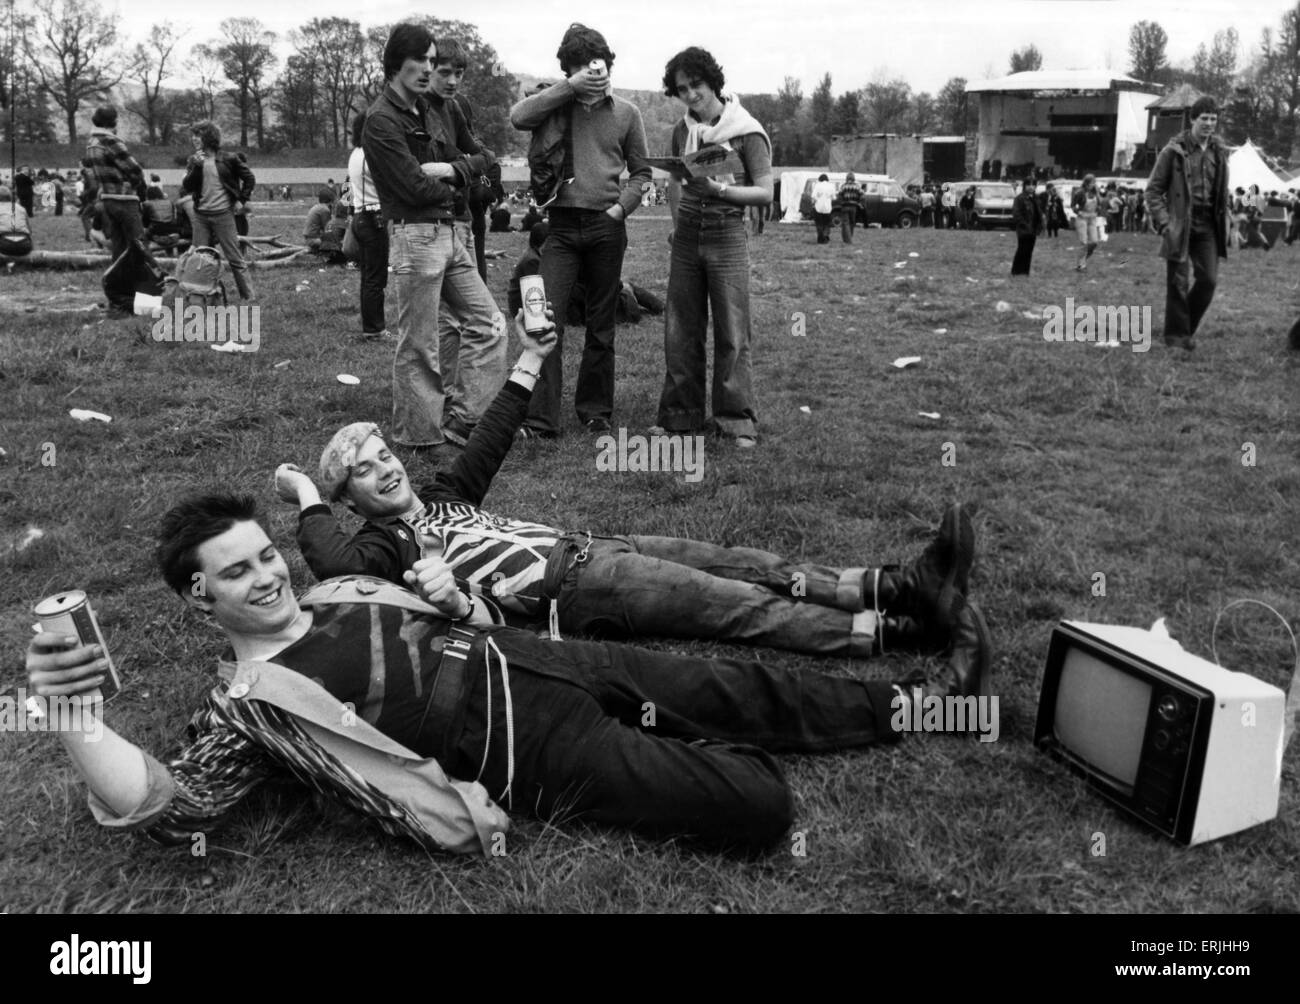 The Loch Lomond Rock Festival, Cameron Wildlife Park, Balloch, Dumbartonshire, Scotland, 26th May 1979. - Stock Image